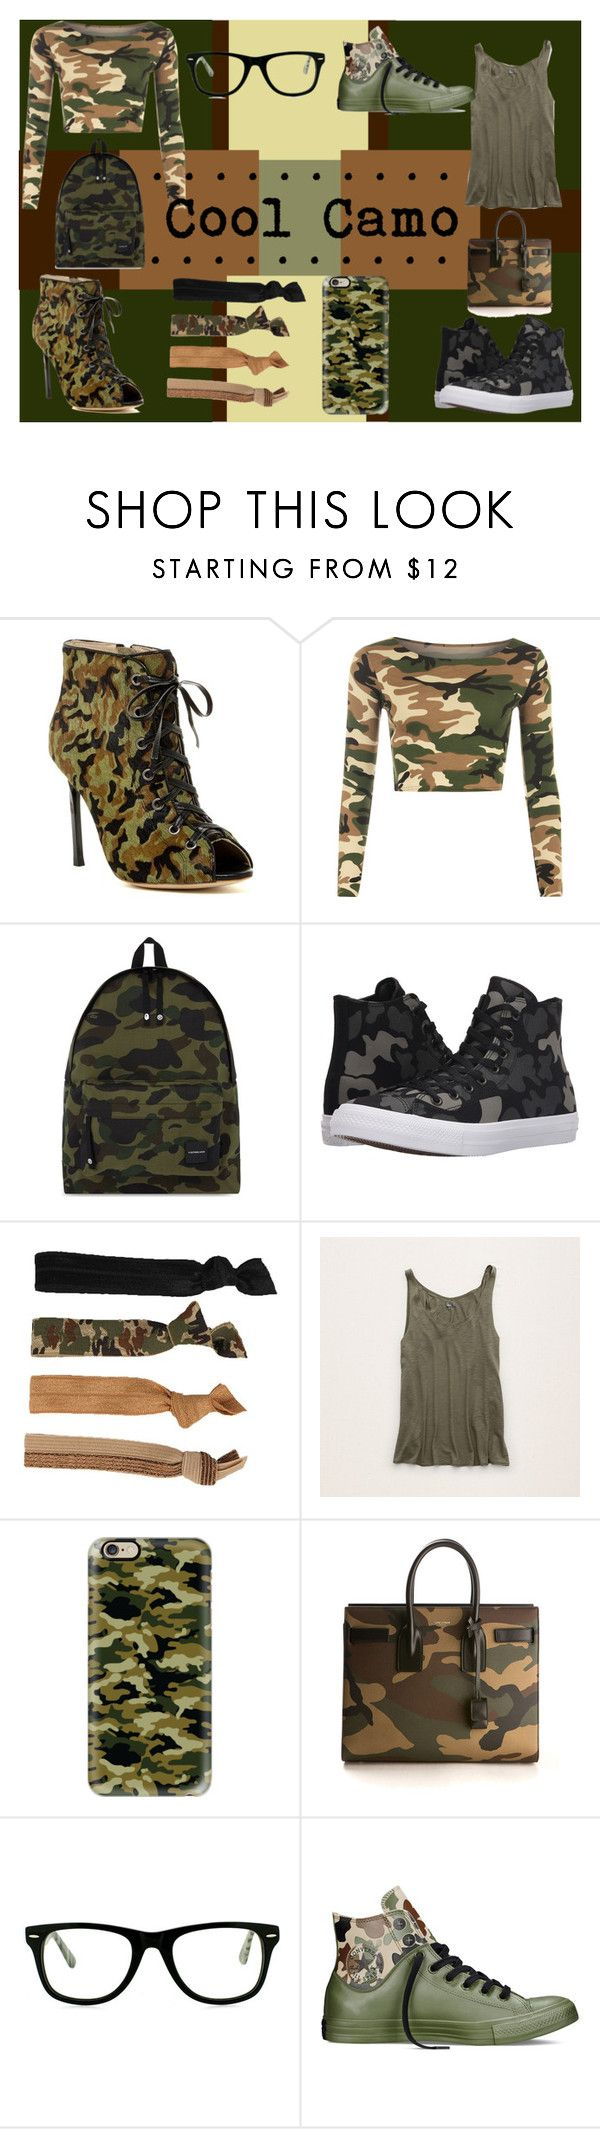 """""""Cool Camo!"""" by lccrabngurl2 ❤ liked on Polyvore featuring Cecelia, WearAll, A BATHING APE, Converse, Glam Bands, Aerie, Casetify, Yves Saint Laurent and Muse"""